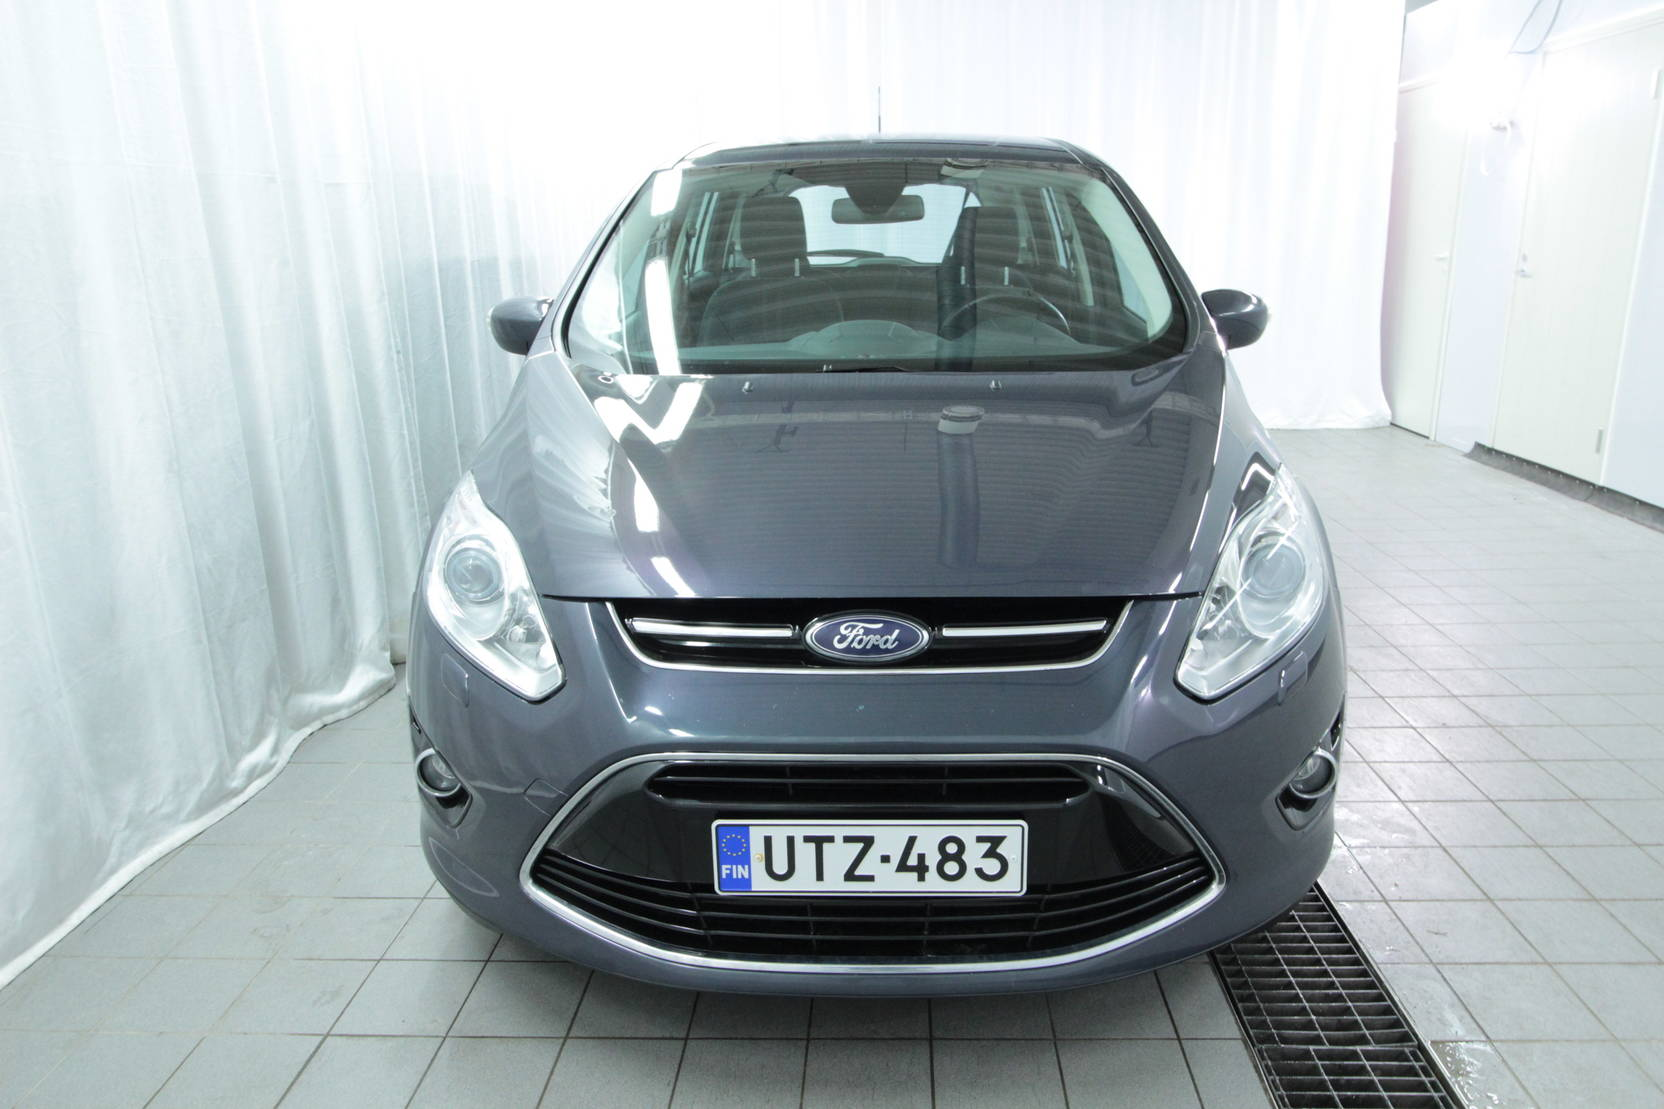 Ford Grand C-Max 2.0 Tdci 163 Hv Powershift Aut Titanium detail2